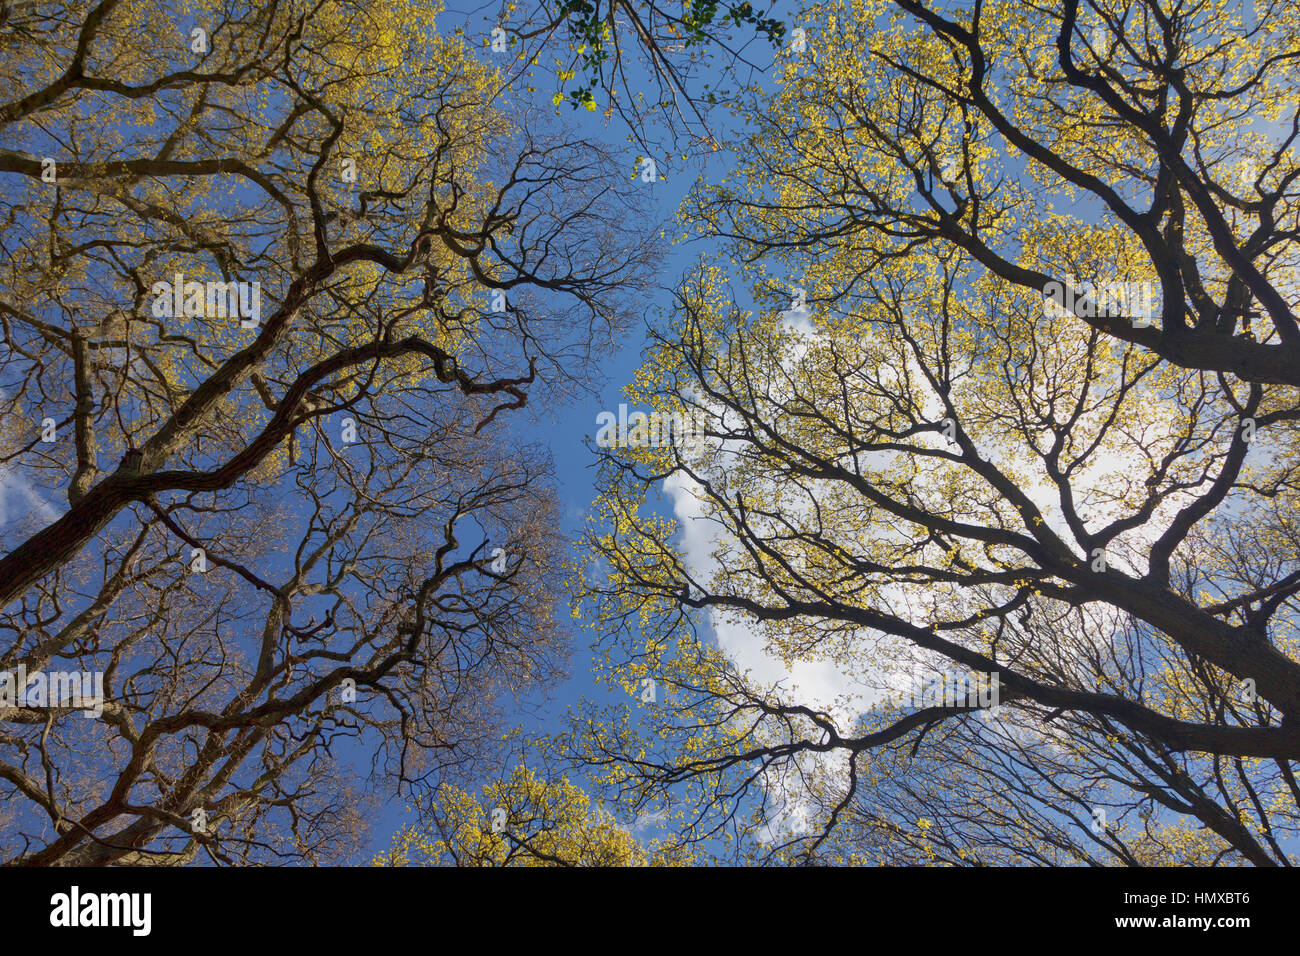 View of the sky from greenbelt, Totteridge London - Stock Image